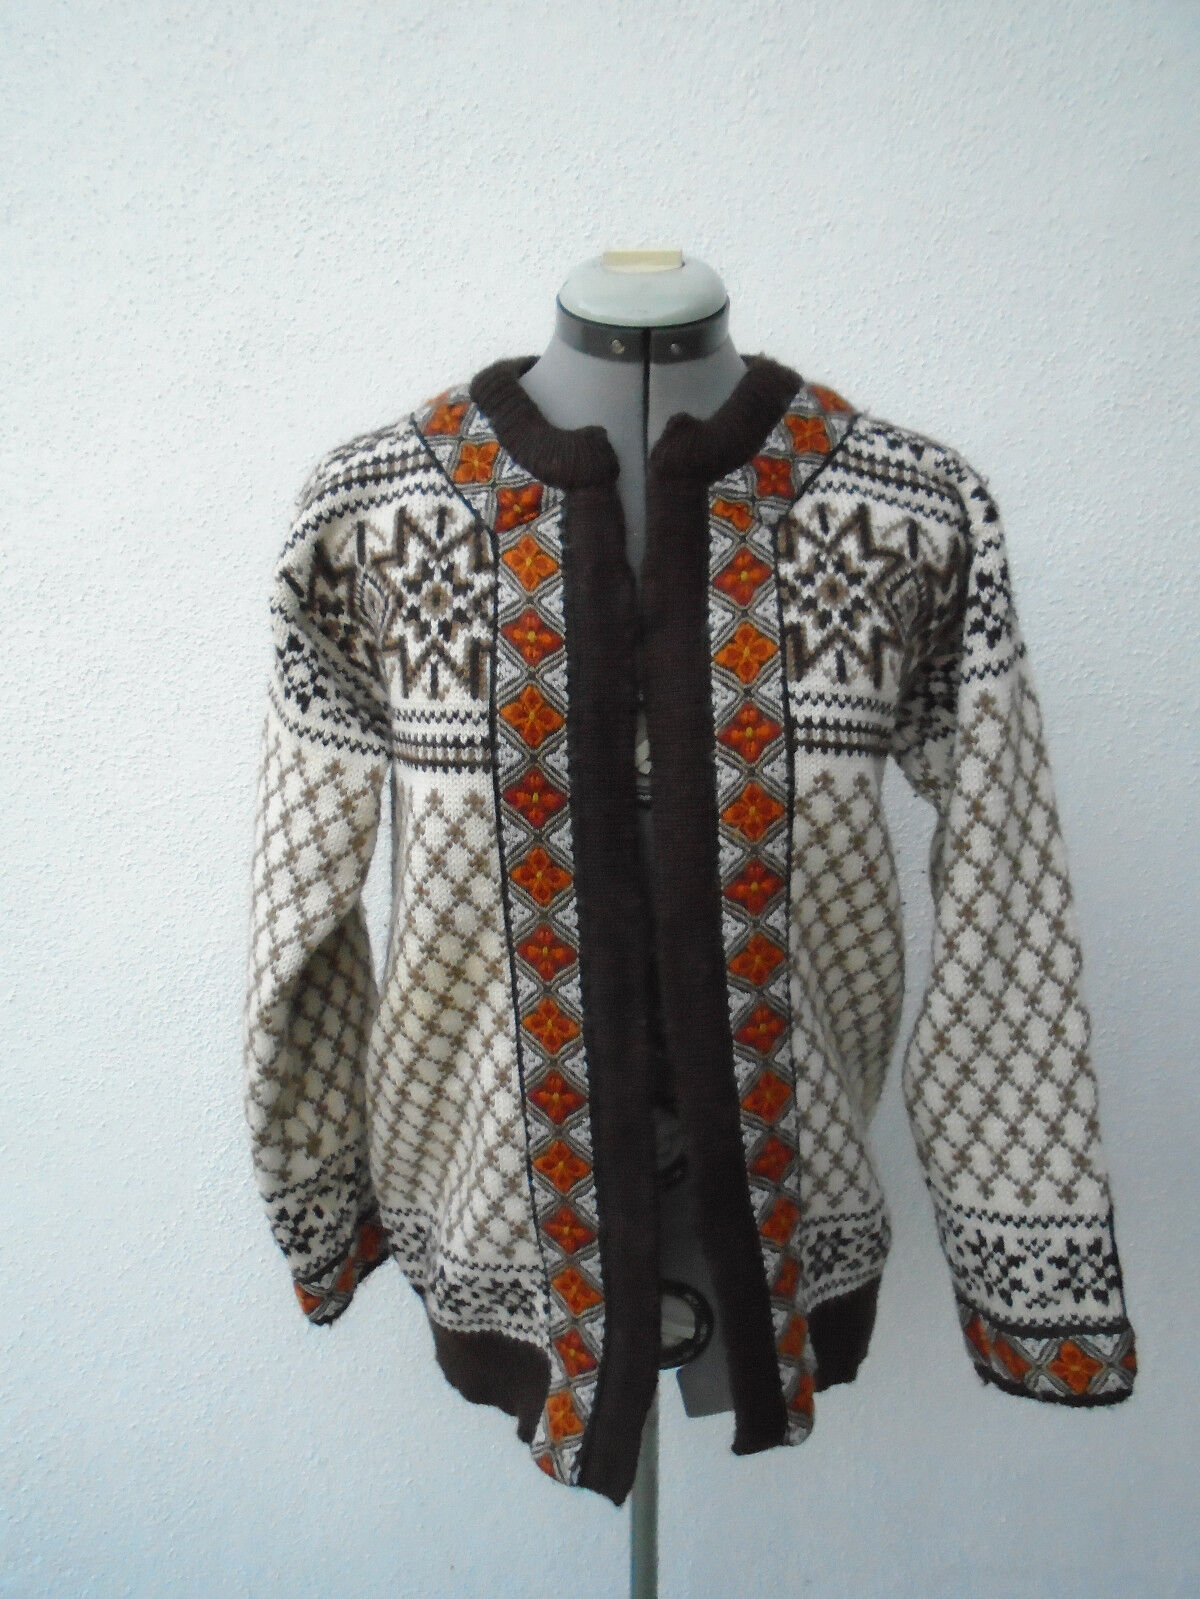 DALE DALE DALE OF NORWAY Open Front Brown White orange Cardigan Size 48 fb09be